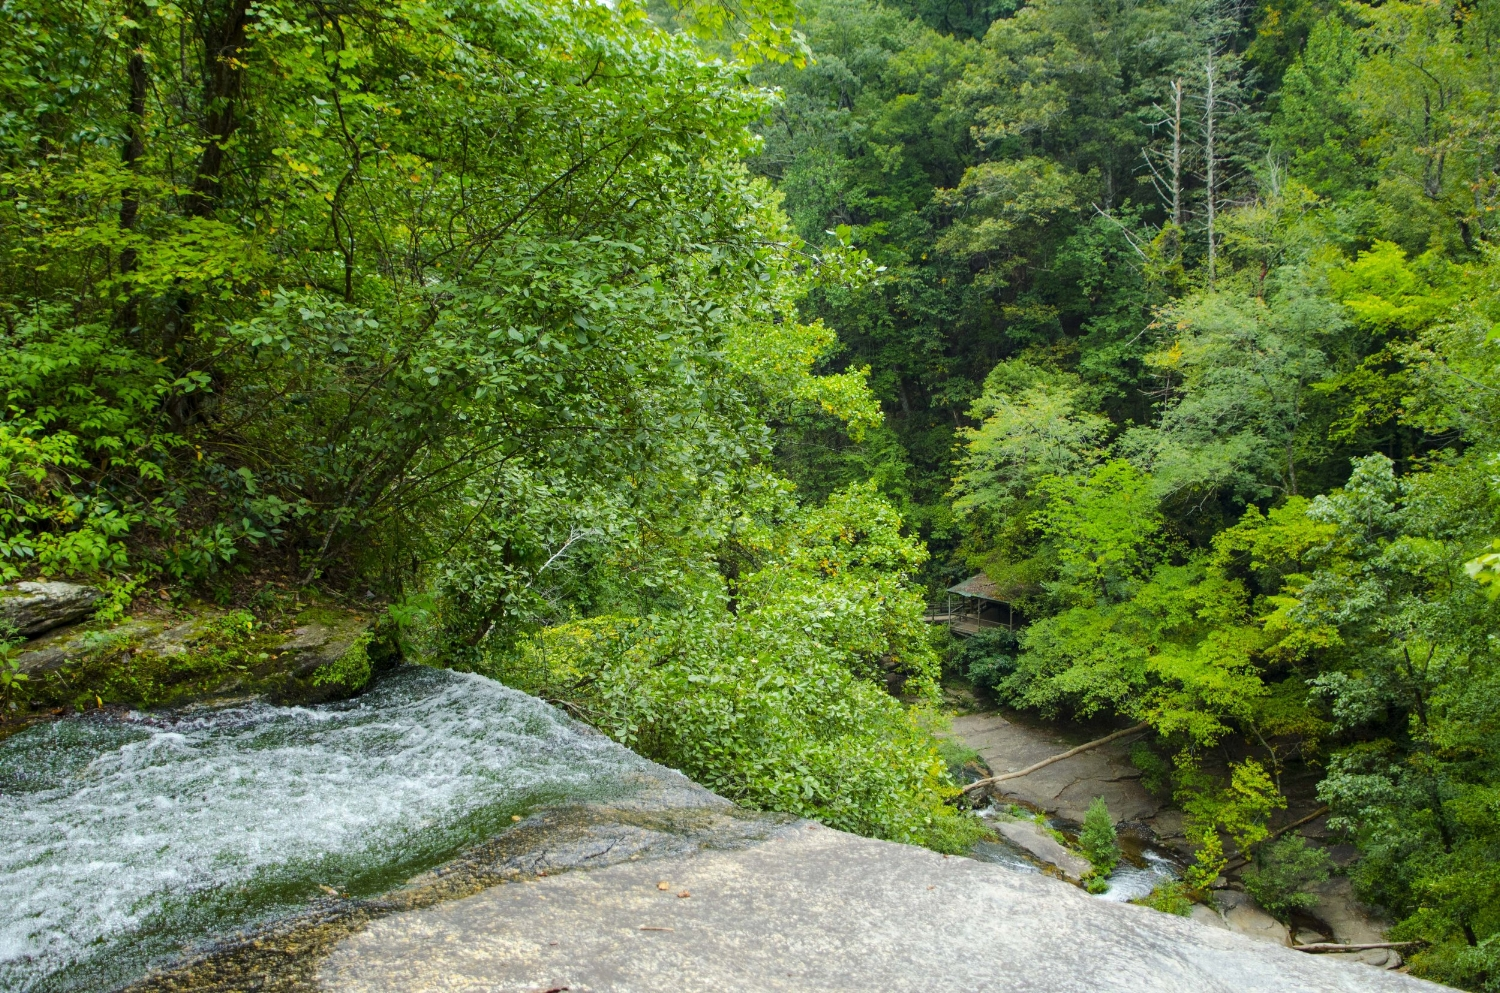 From the top of Reedy Cove Falls you can see the viewing platform at the base of the falls, 75 feet below. SCDNR photo by David Lucas